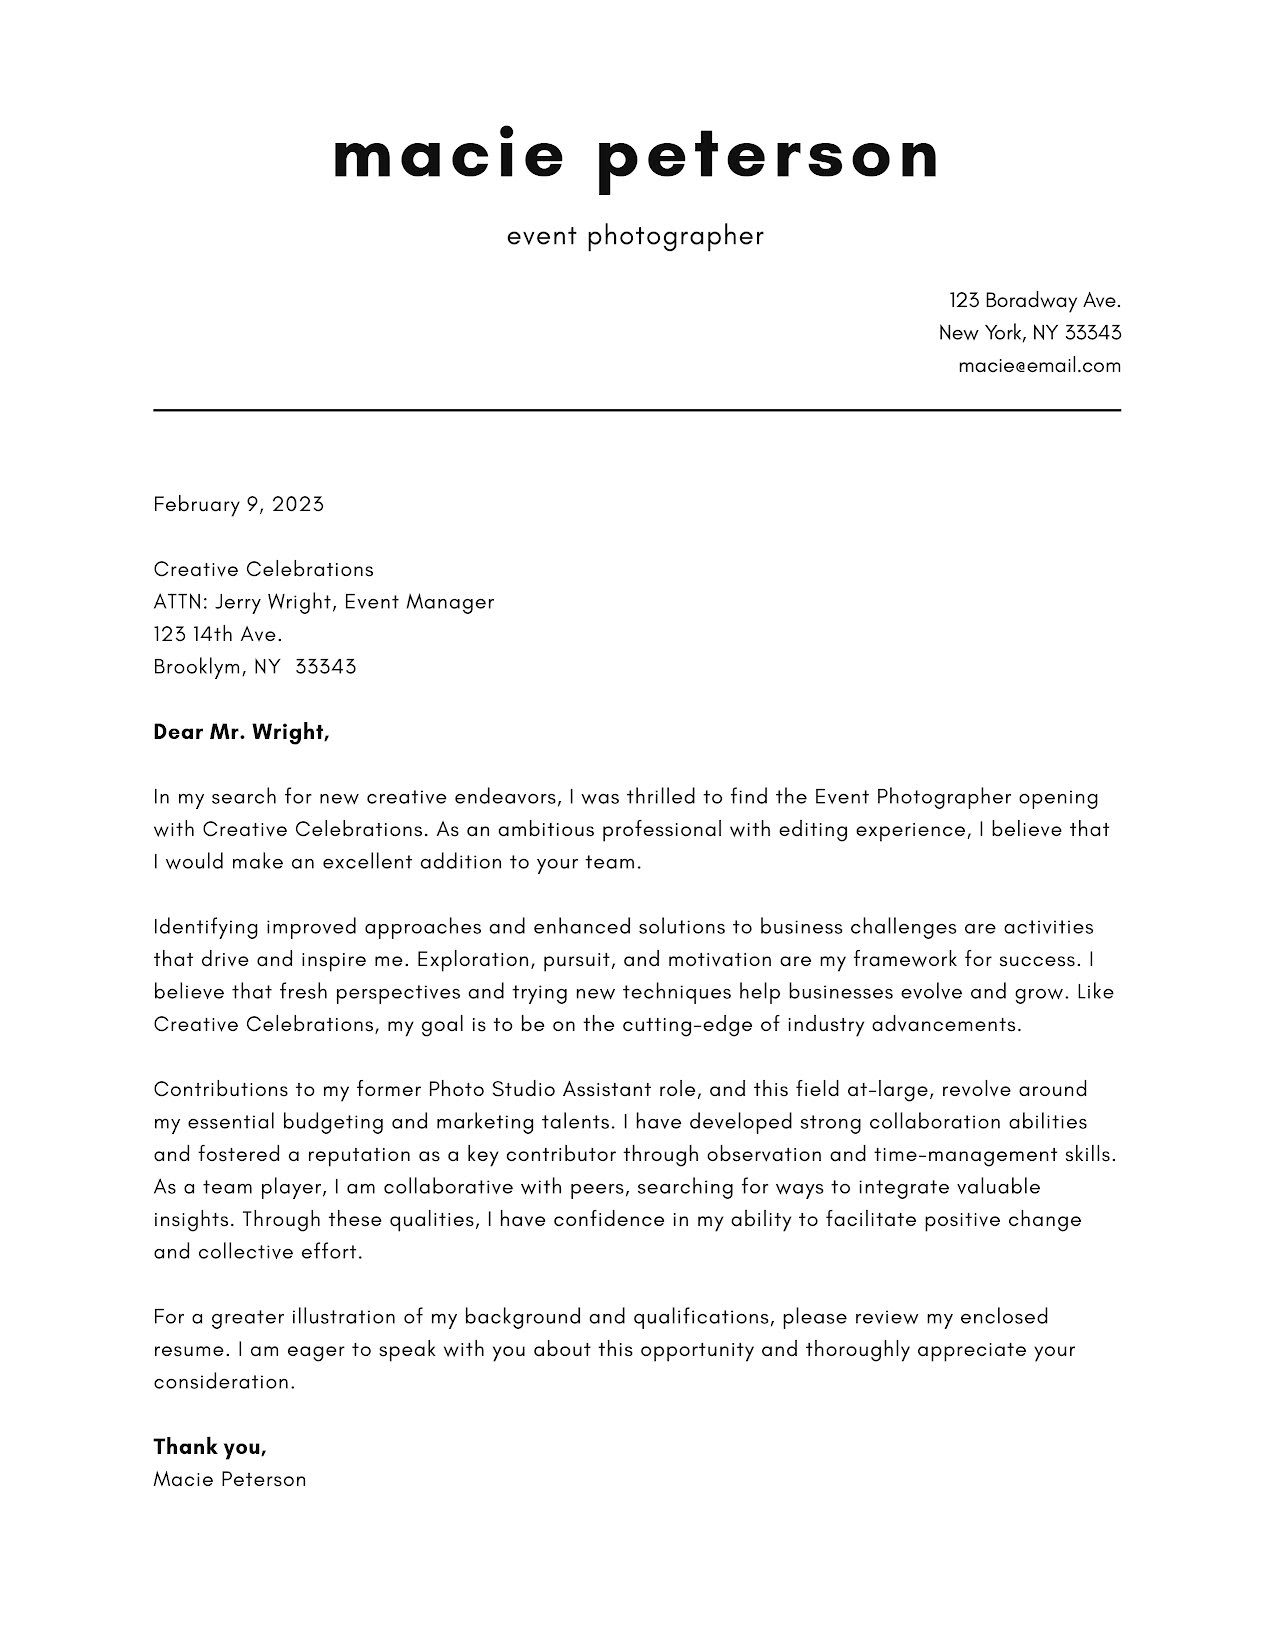 Macie Peterson - Cover Letter Template